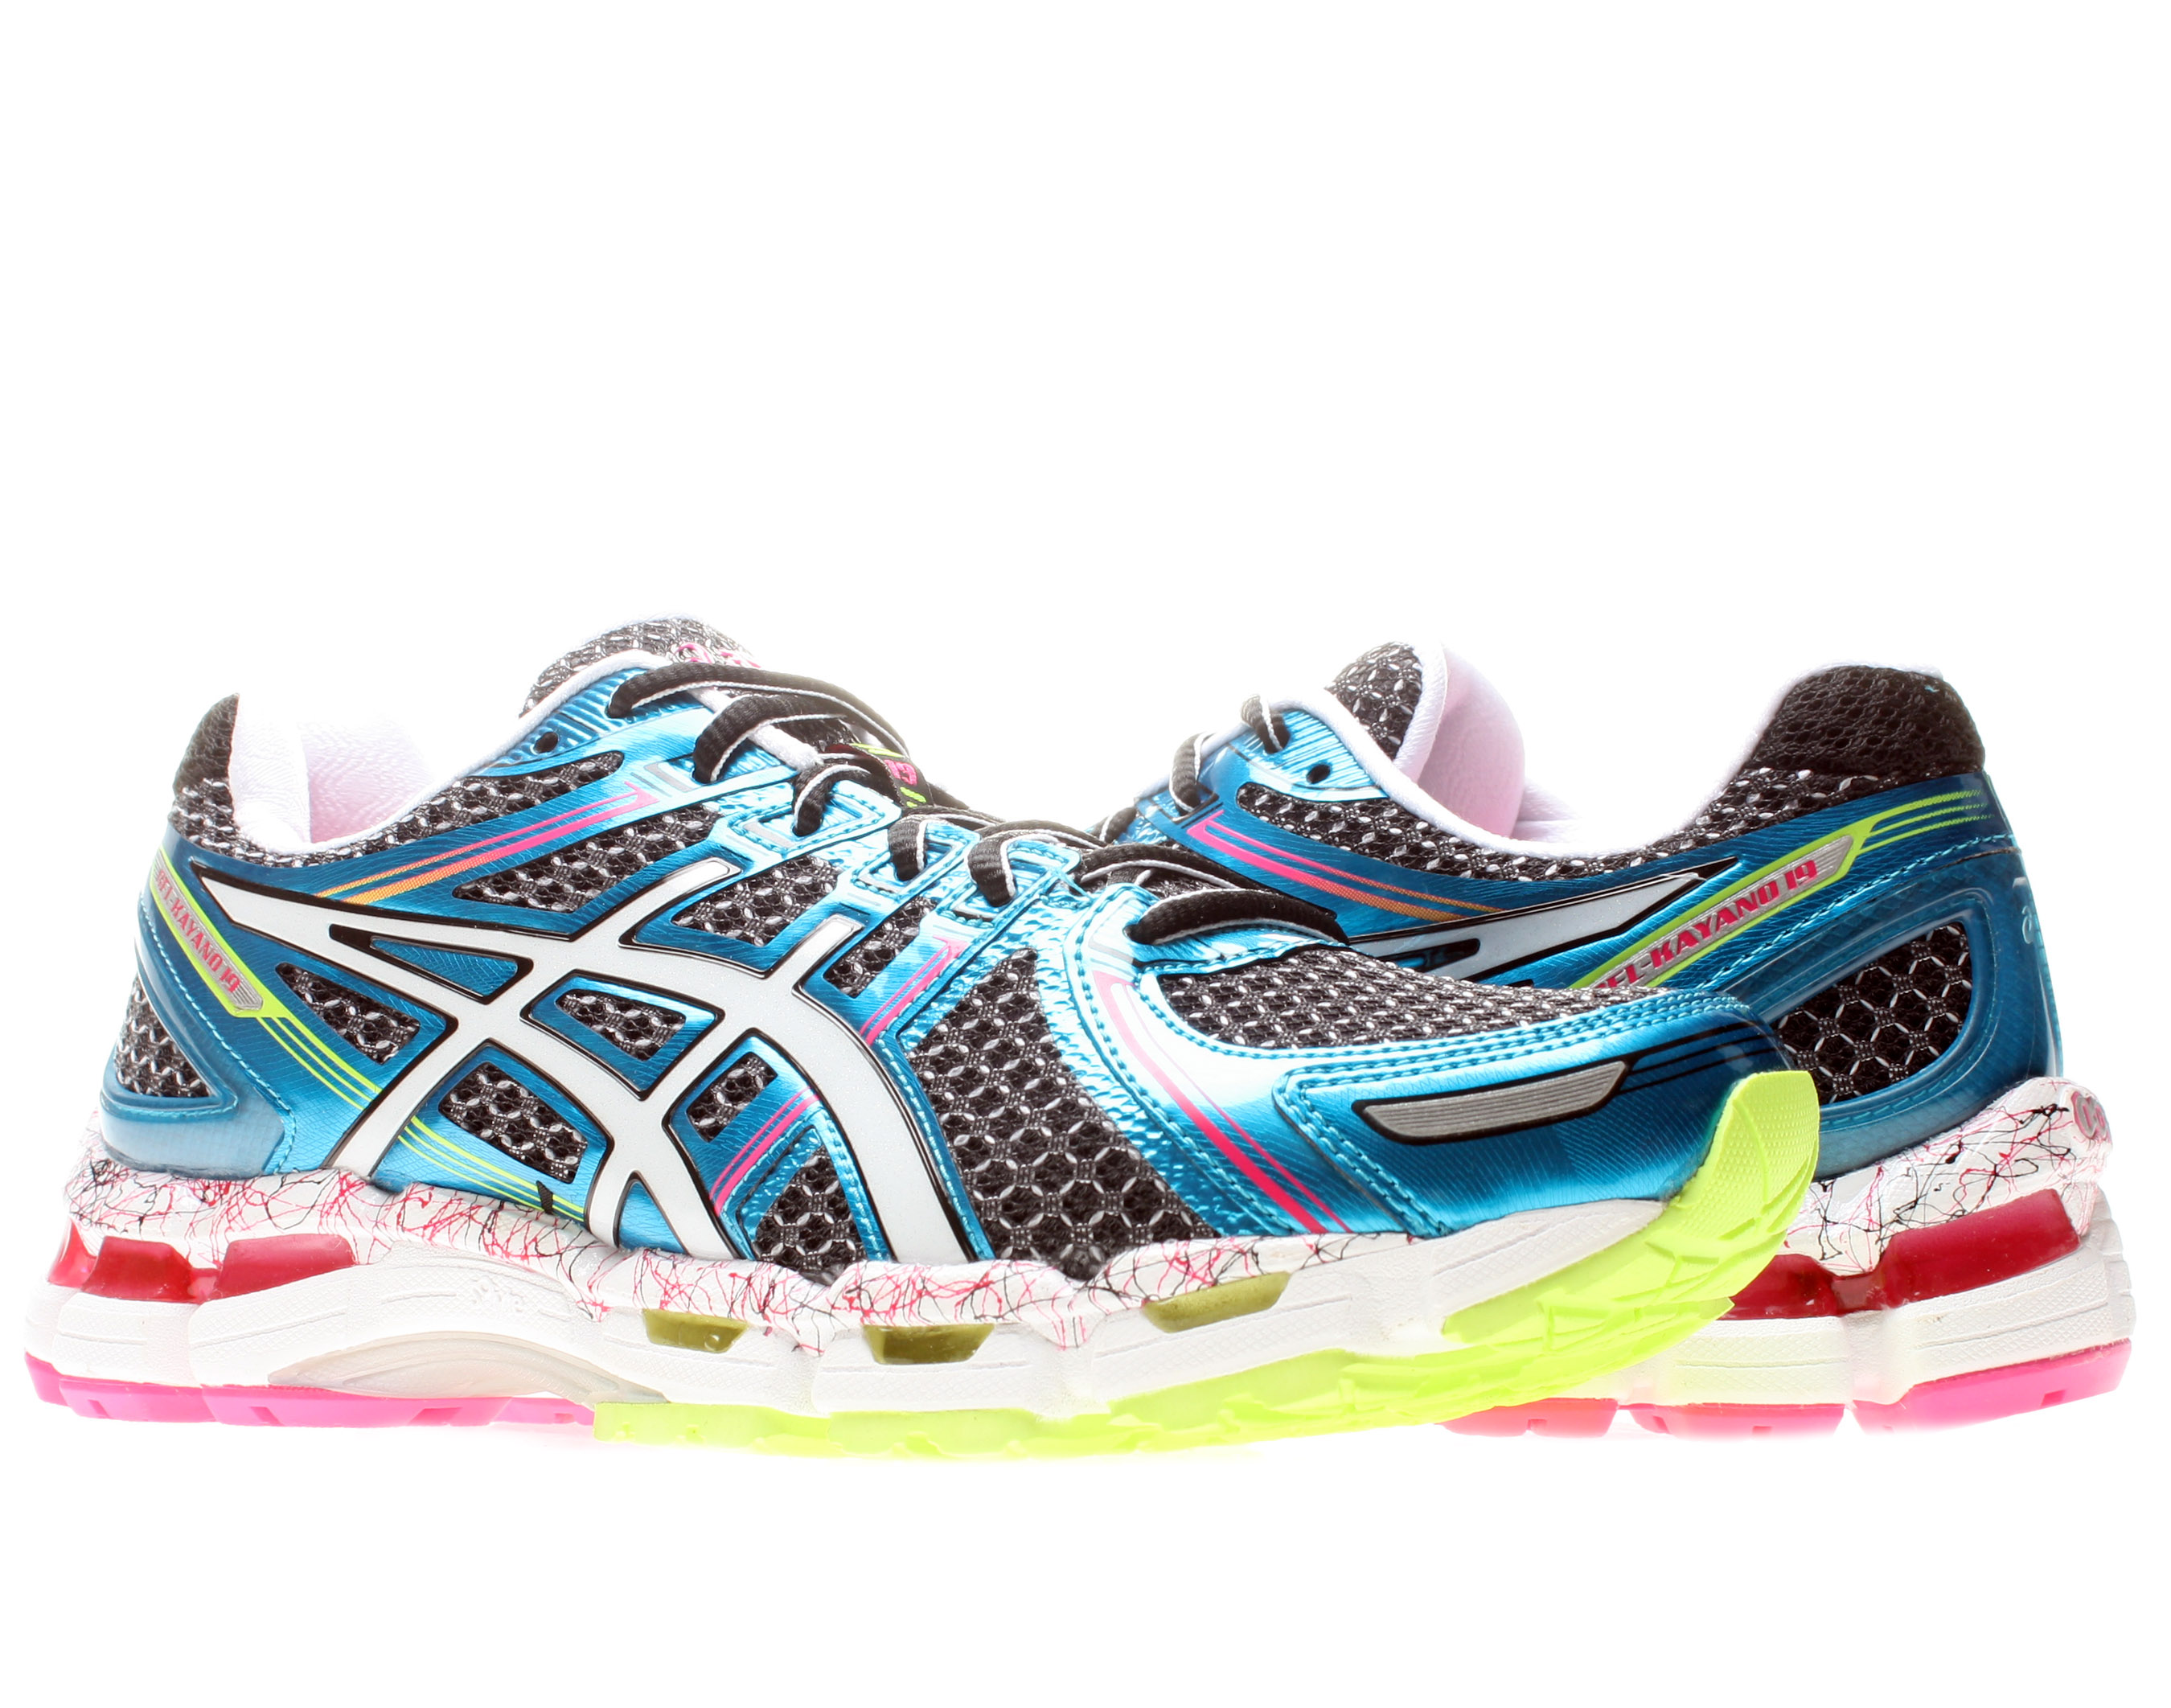 Asics Gel-Kayano 19 Women's Running Shoes Size 6 by ASICS